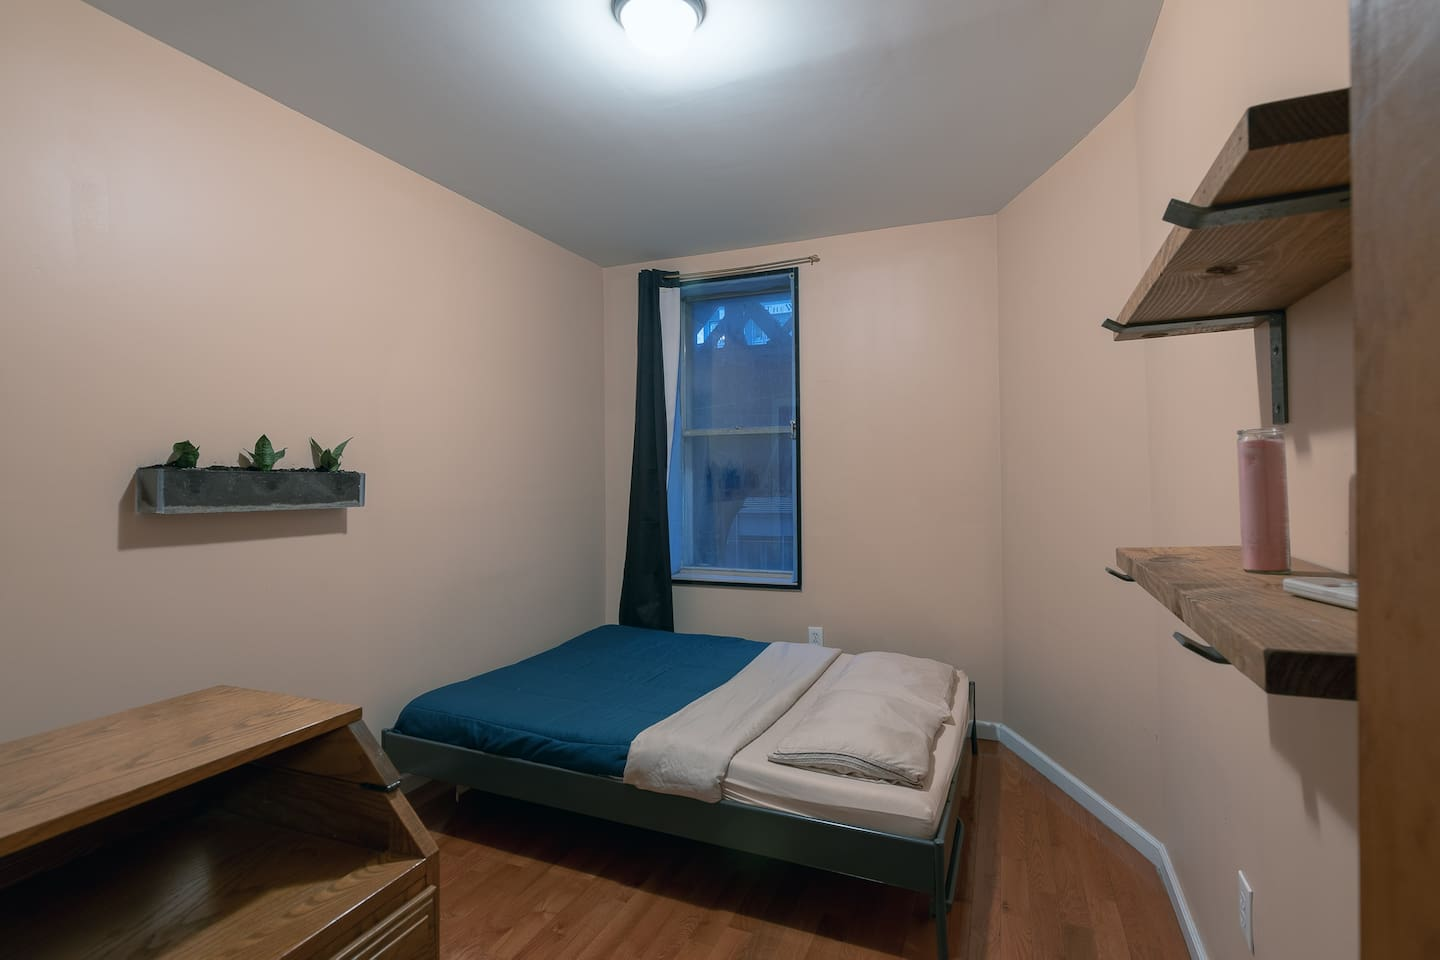 Queen size bed with clean bedsheets and towels provided